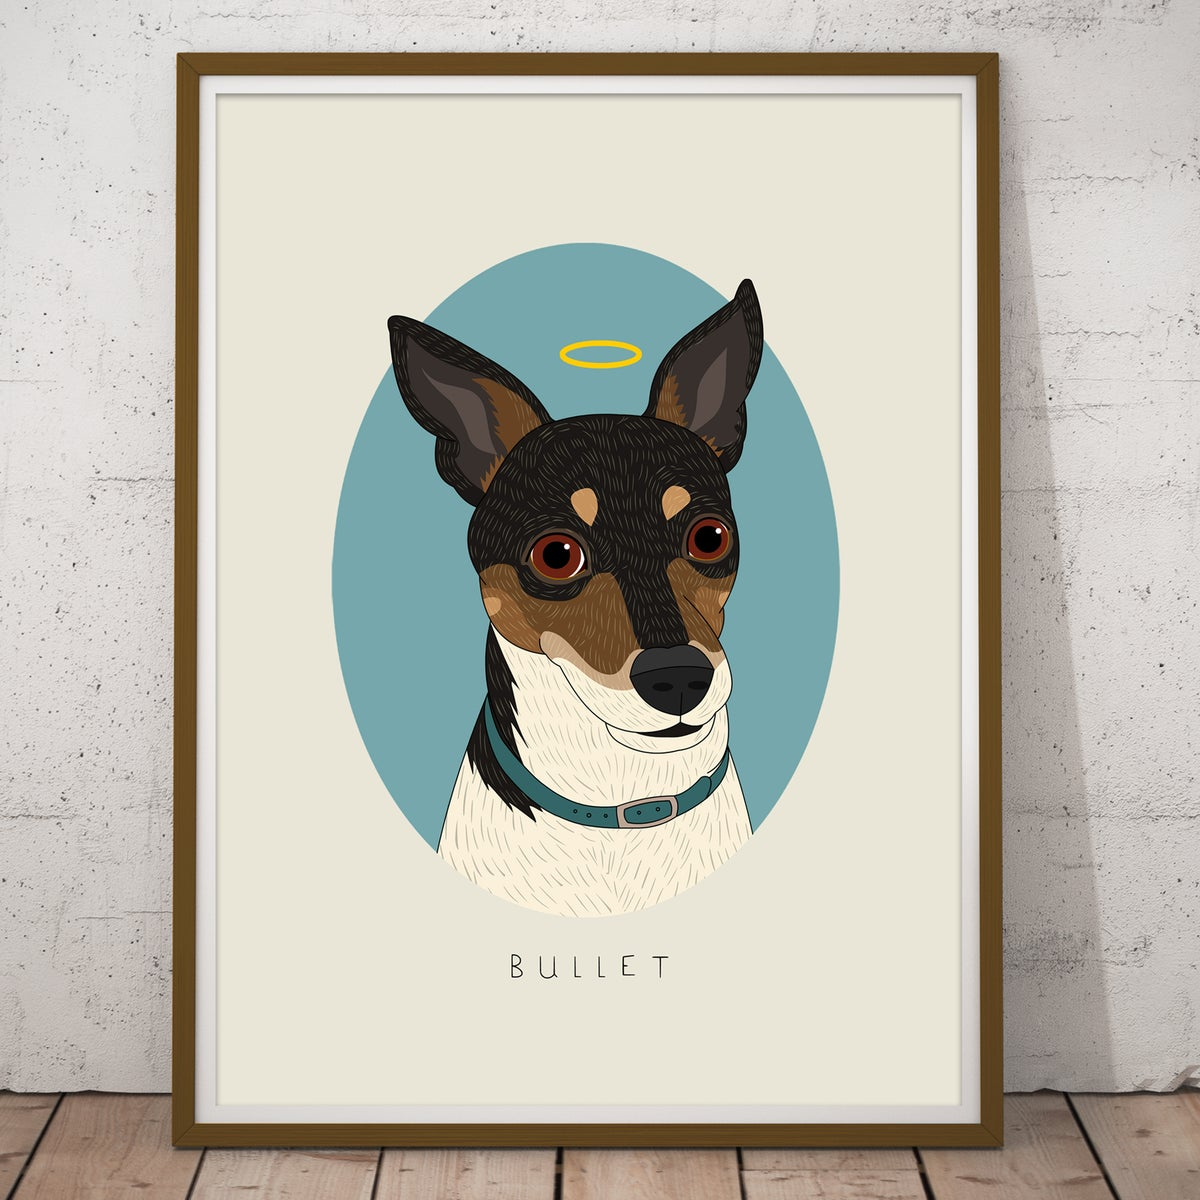 Image of Dog portrait. Digital Drawing from photo.